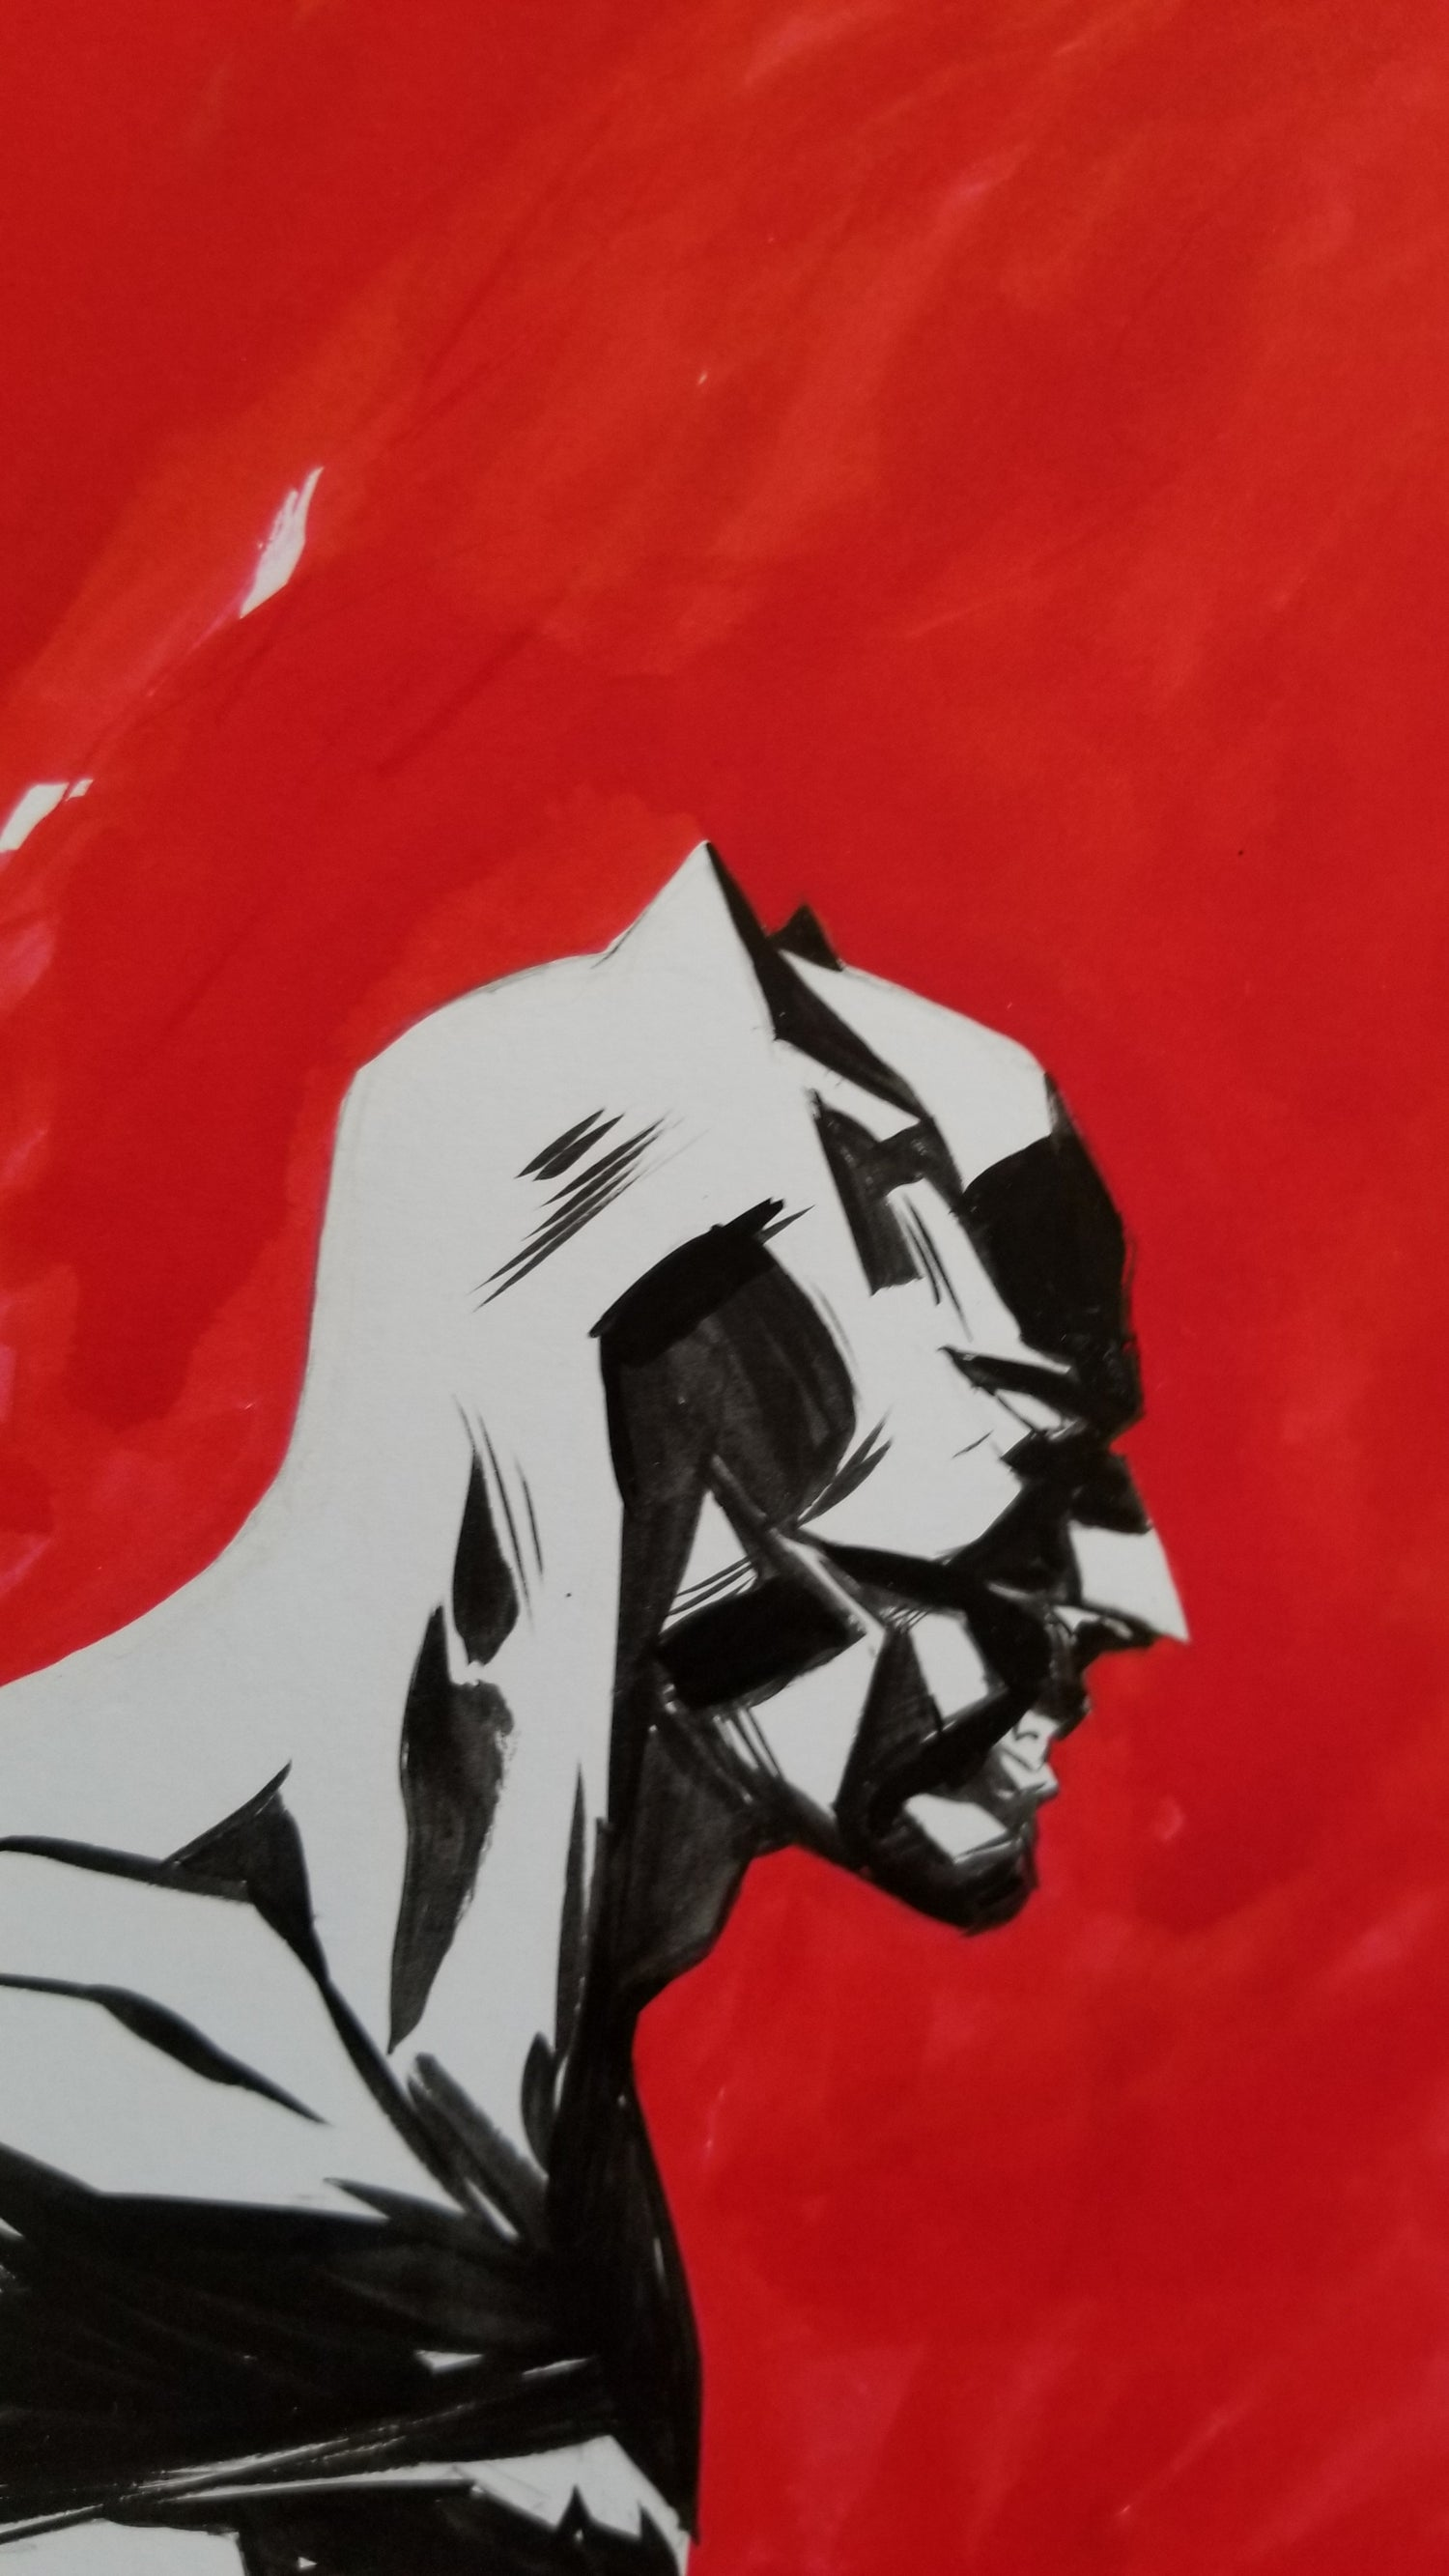 Image of Batman in the red